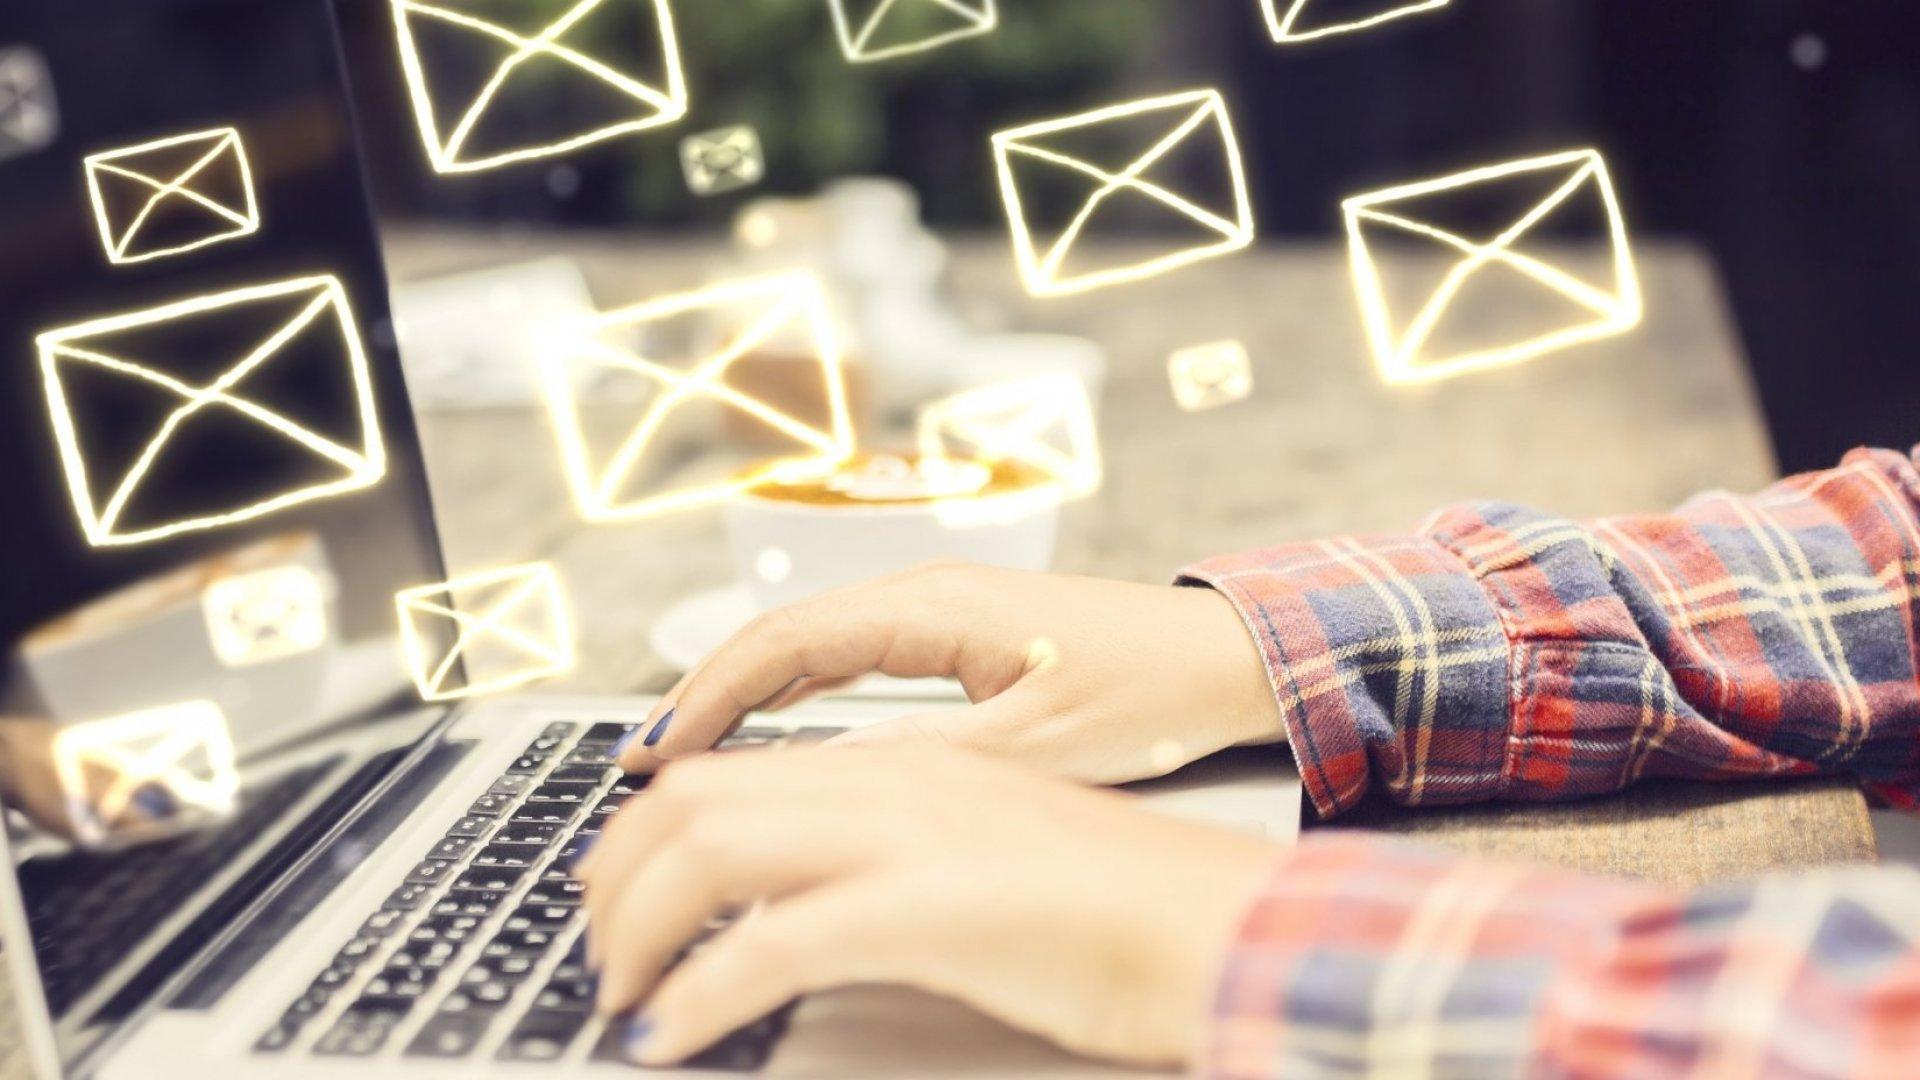 6 Annoying Email Habits That Ruin Productivity and Destroy Trust